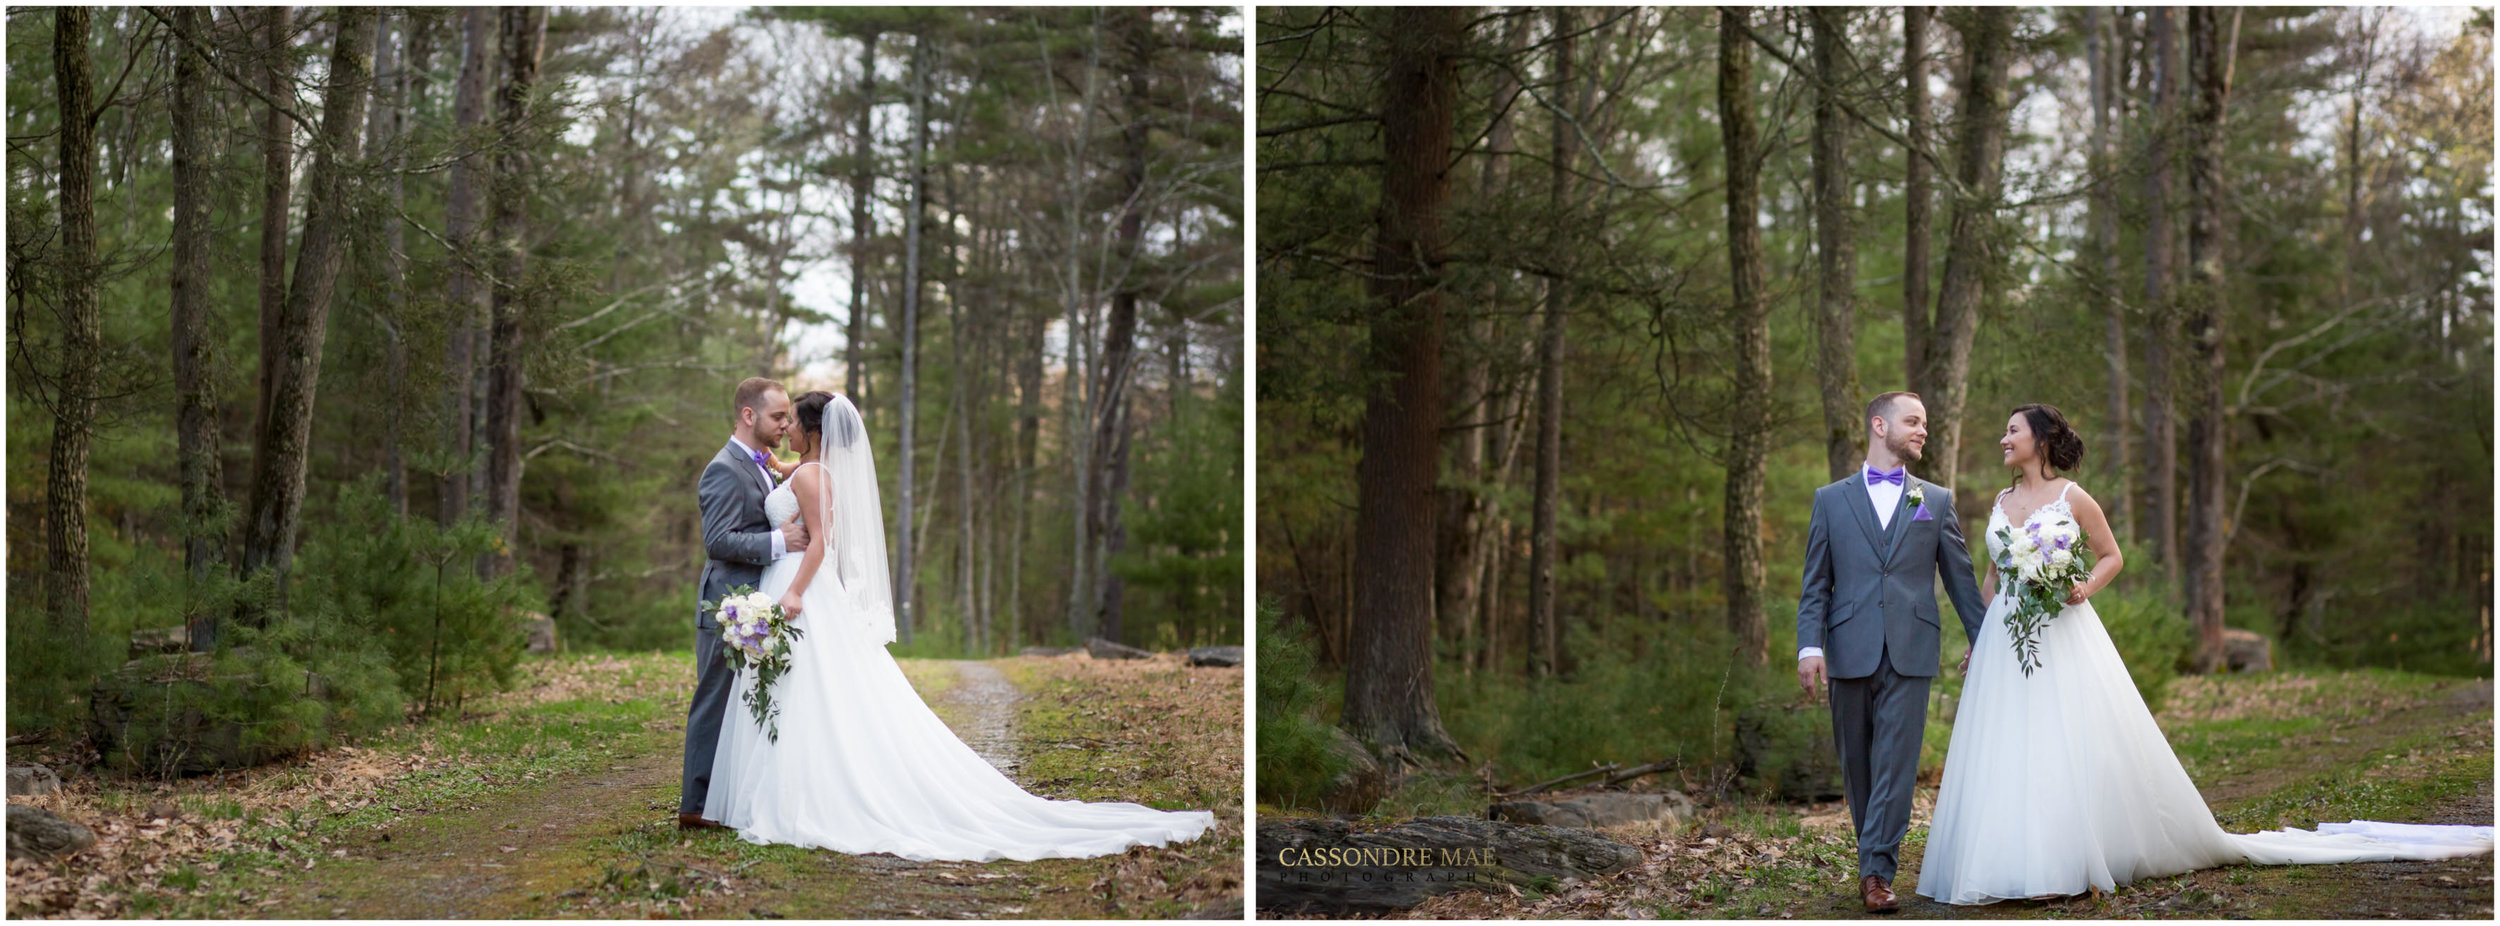 Cassondre Mae Photography Woodloch Resort Wedding 29.jpg